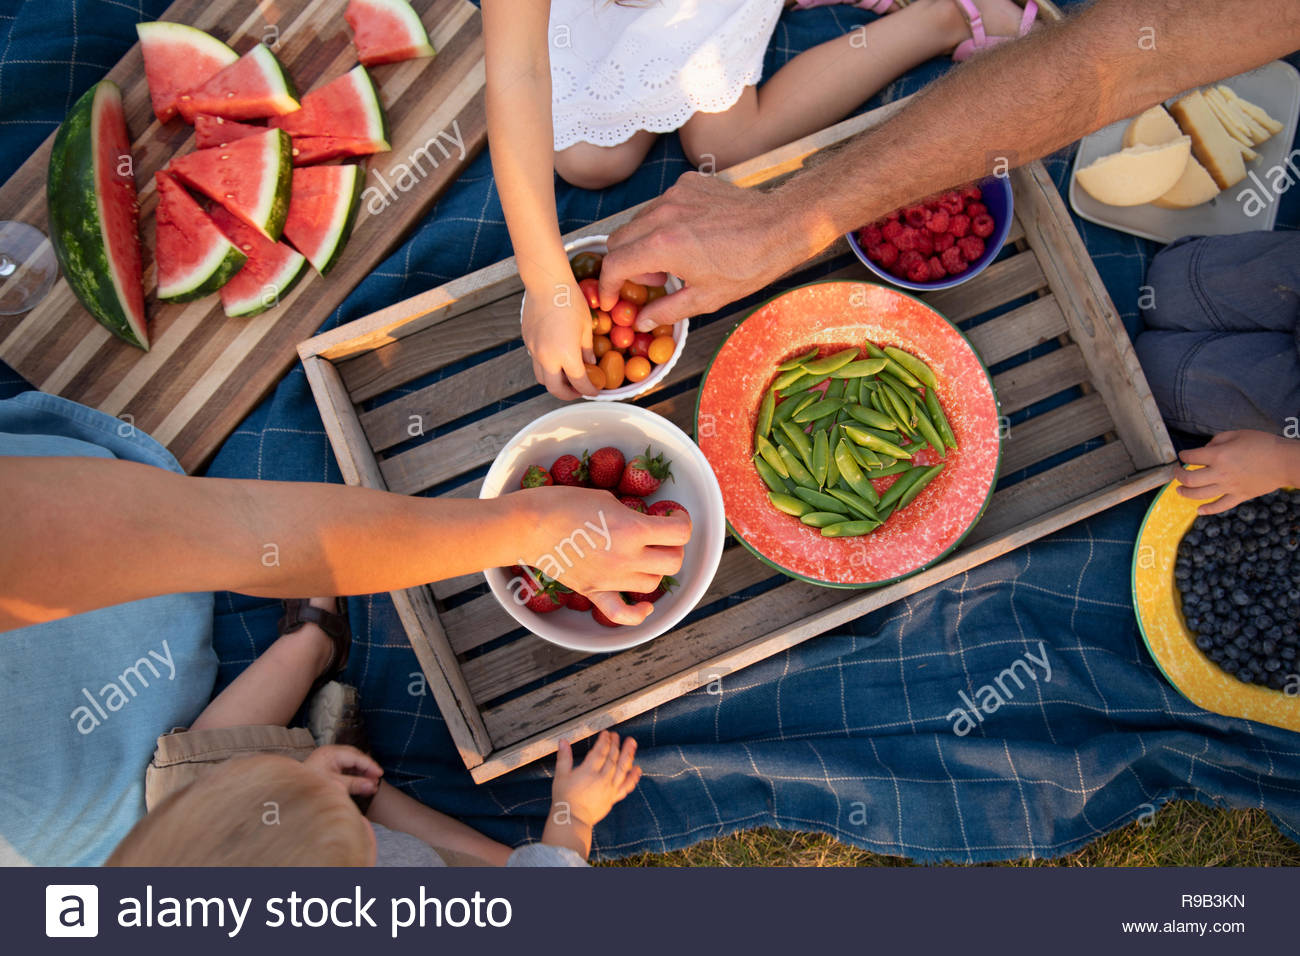 View from above family enjoying picnic, eating fresh fruits and vegetables - Stock Image